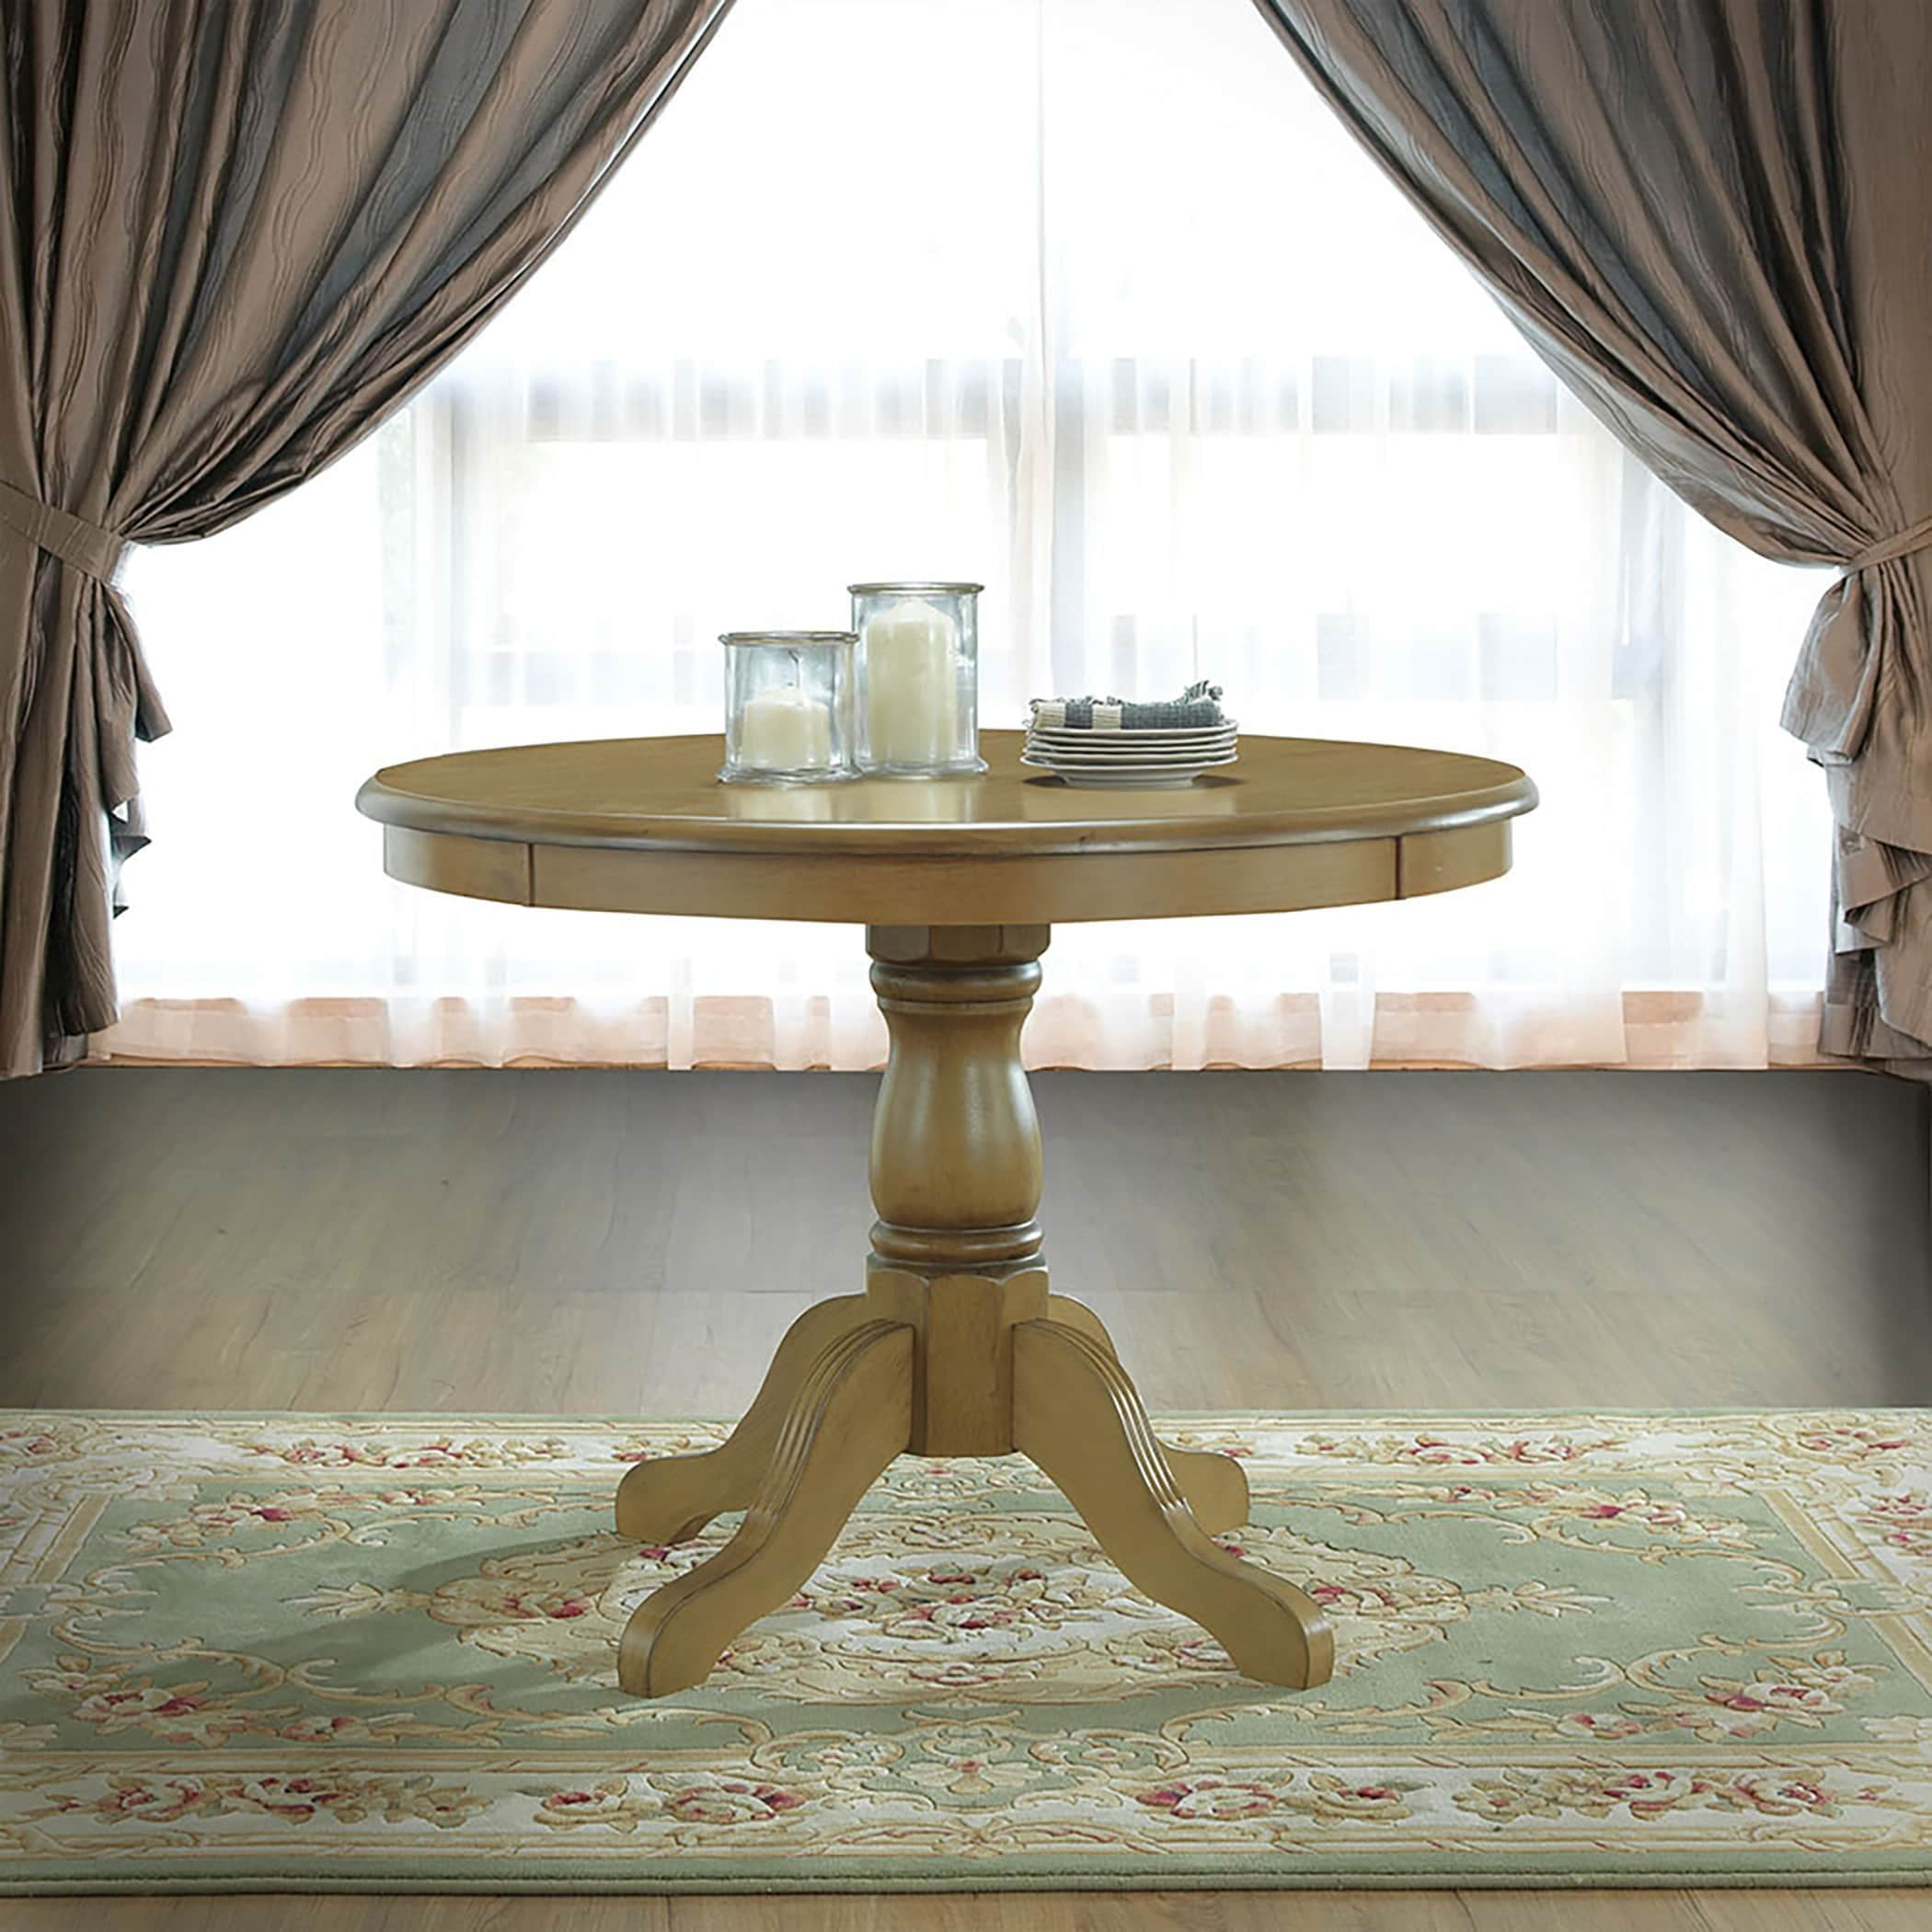 Carolina Chair and Table Ansley Pedestal Dining Table by Overstock